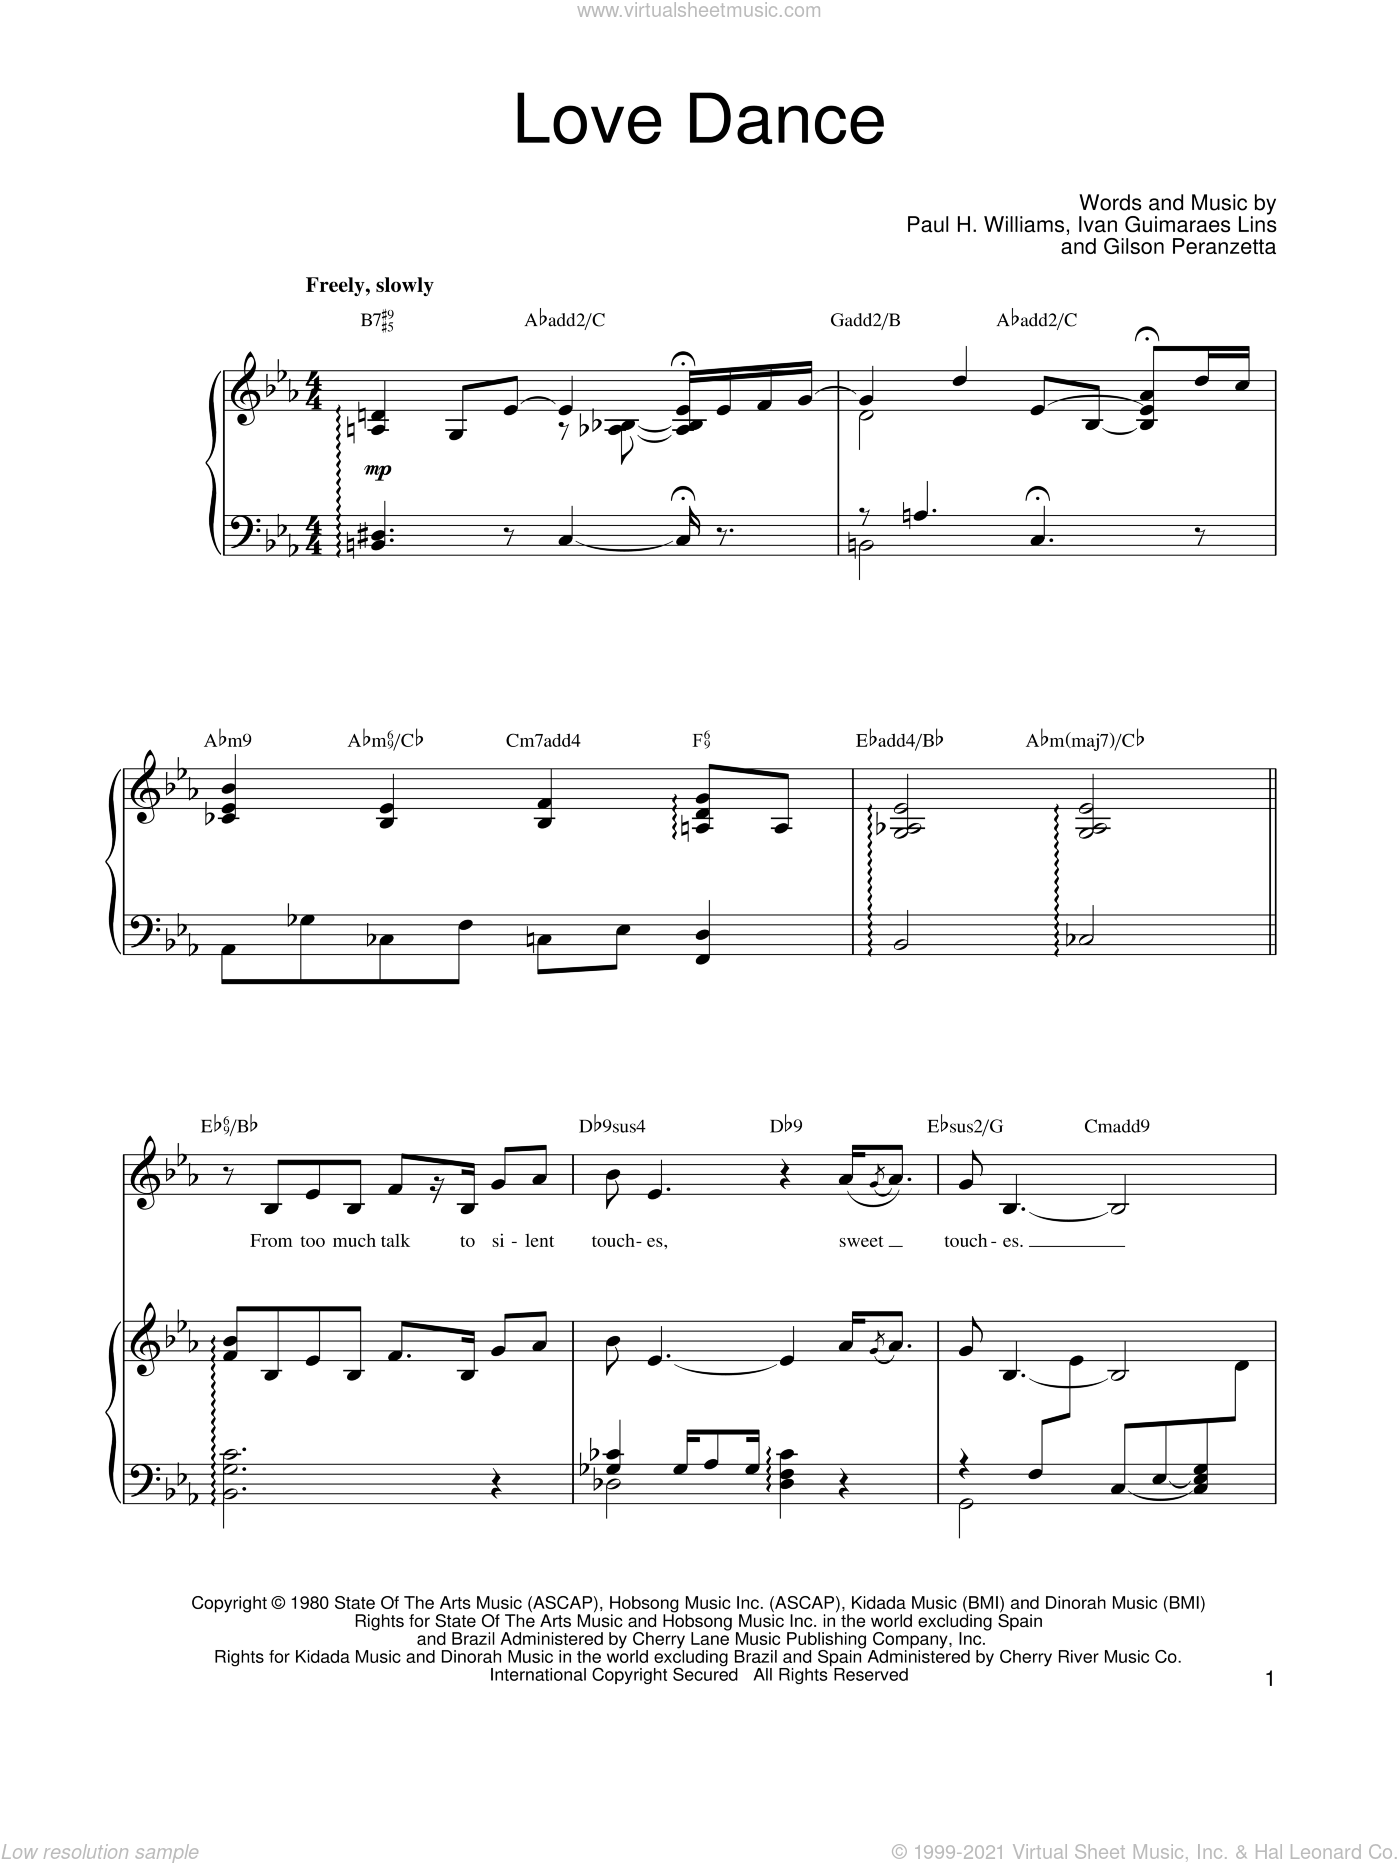 Love Dance sheet music for voice, piano or guitar by Barbra Streisand, Gilson Peranzetta, Ivan Guimaraes Lins and Paul Williams, intermediate skill level